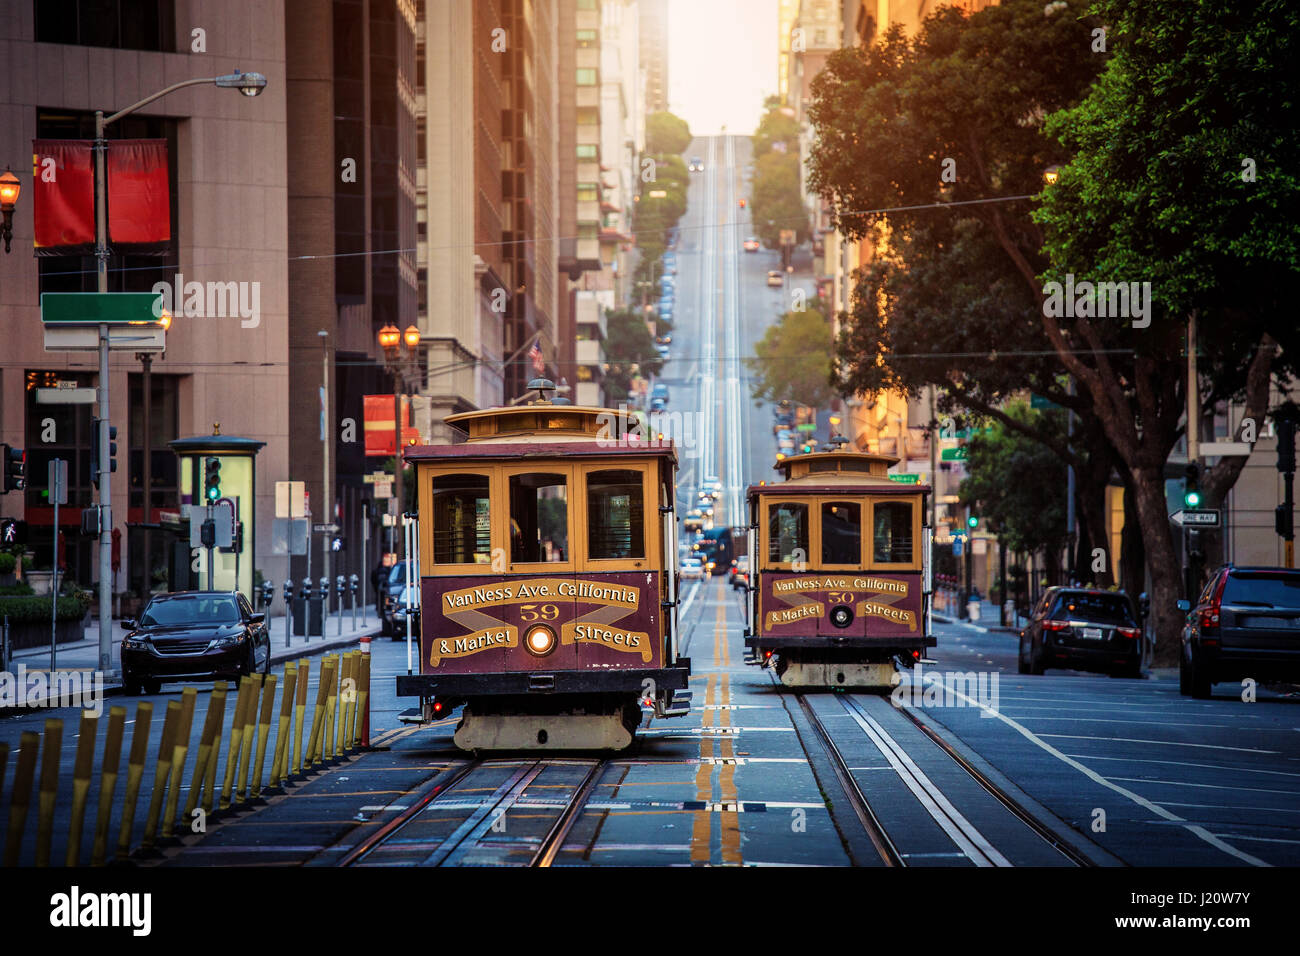 Classic view of historic traditional Cable Cars riding on famous California Street in beautiful early morning light - Stock Image